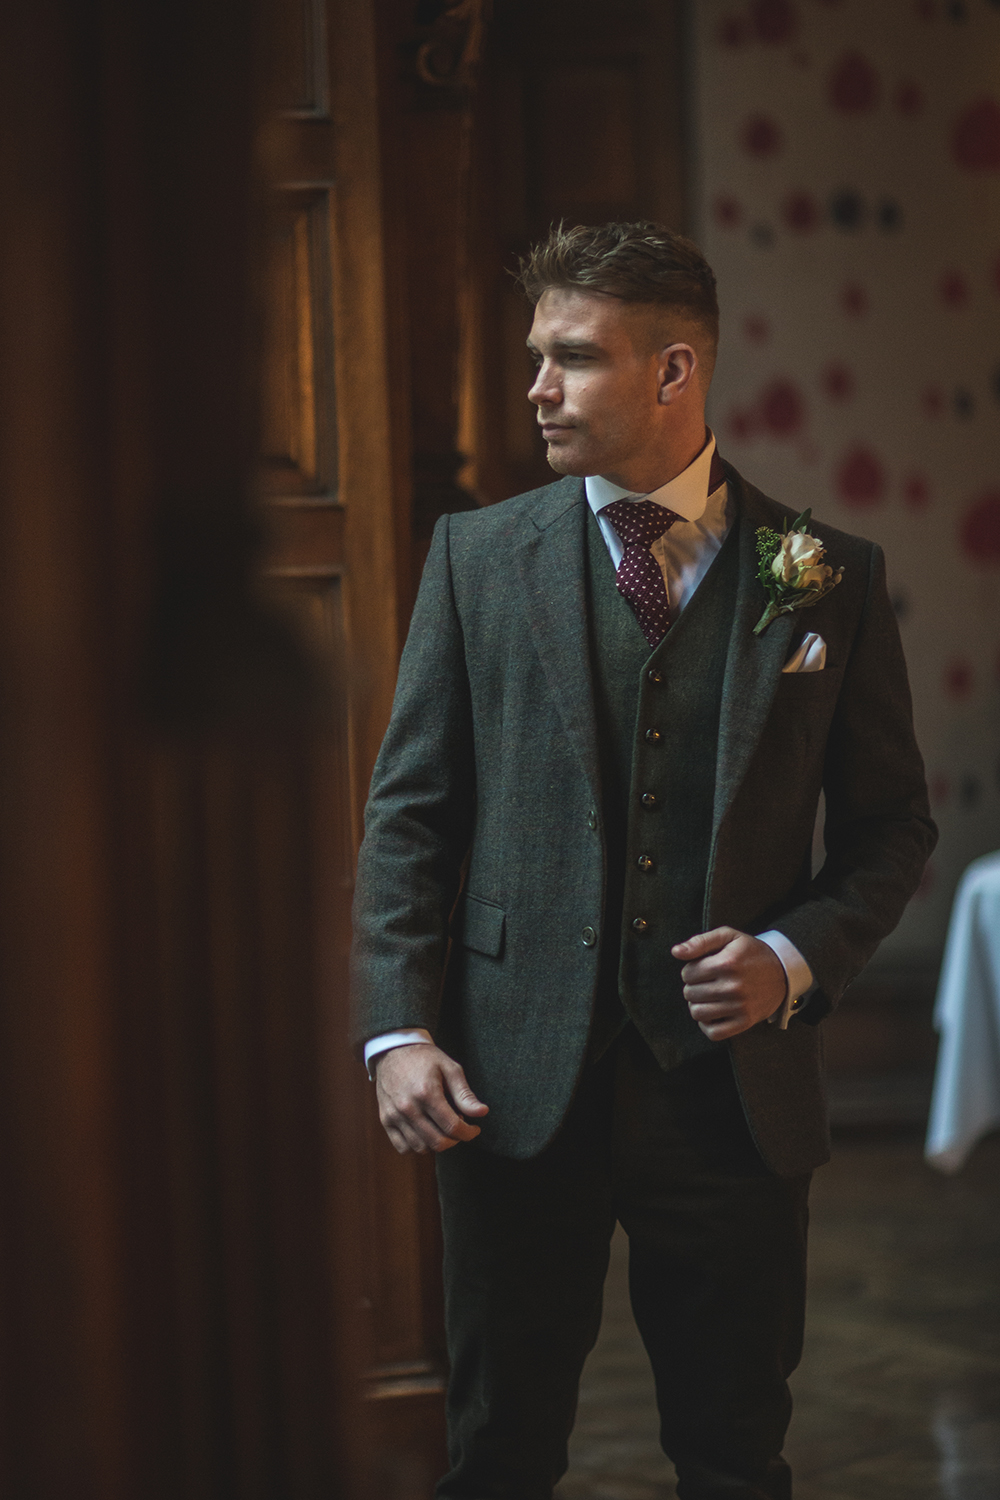 Super Cool Wedding Suits Newcastle upon Tyne